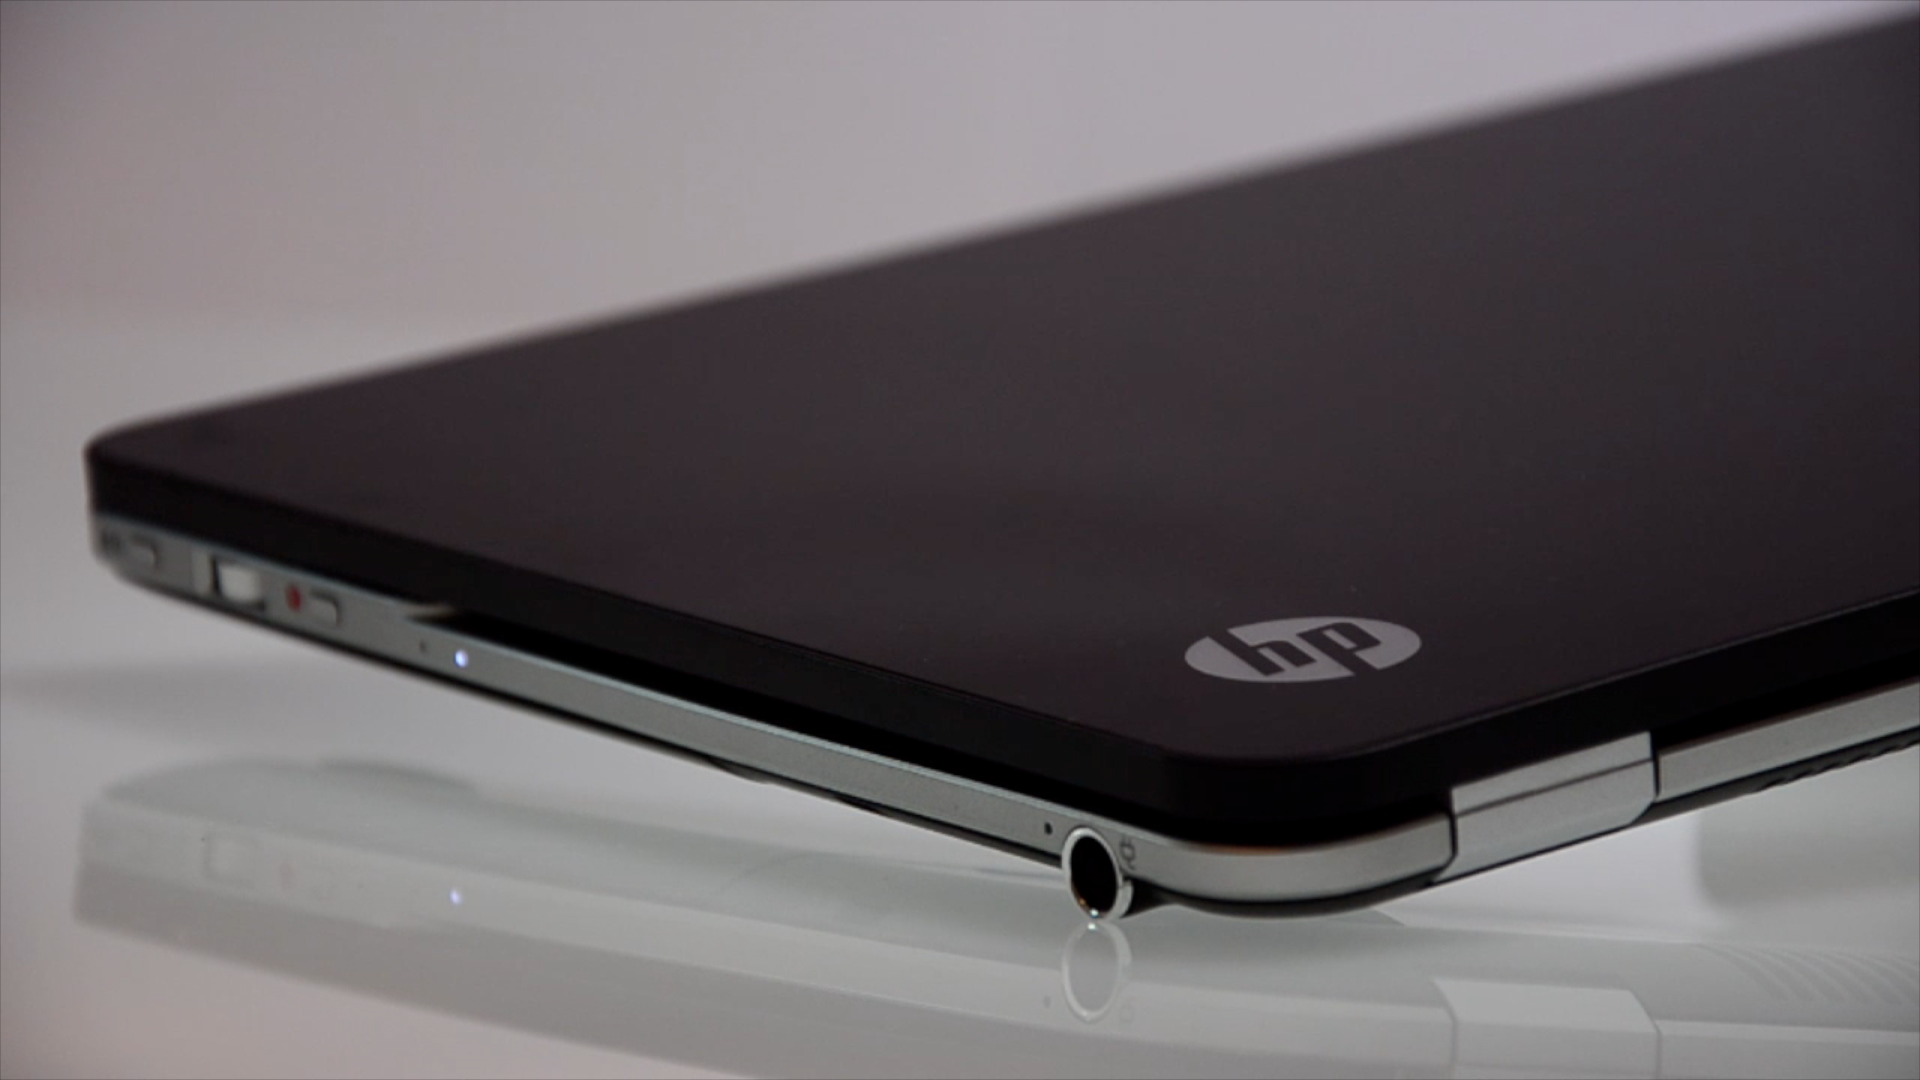 This week Ive been testing the HP Envy Spectre 14 a glass covered 1920x1080